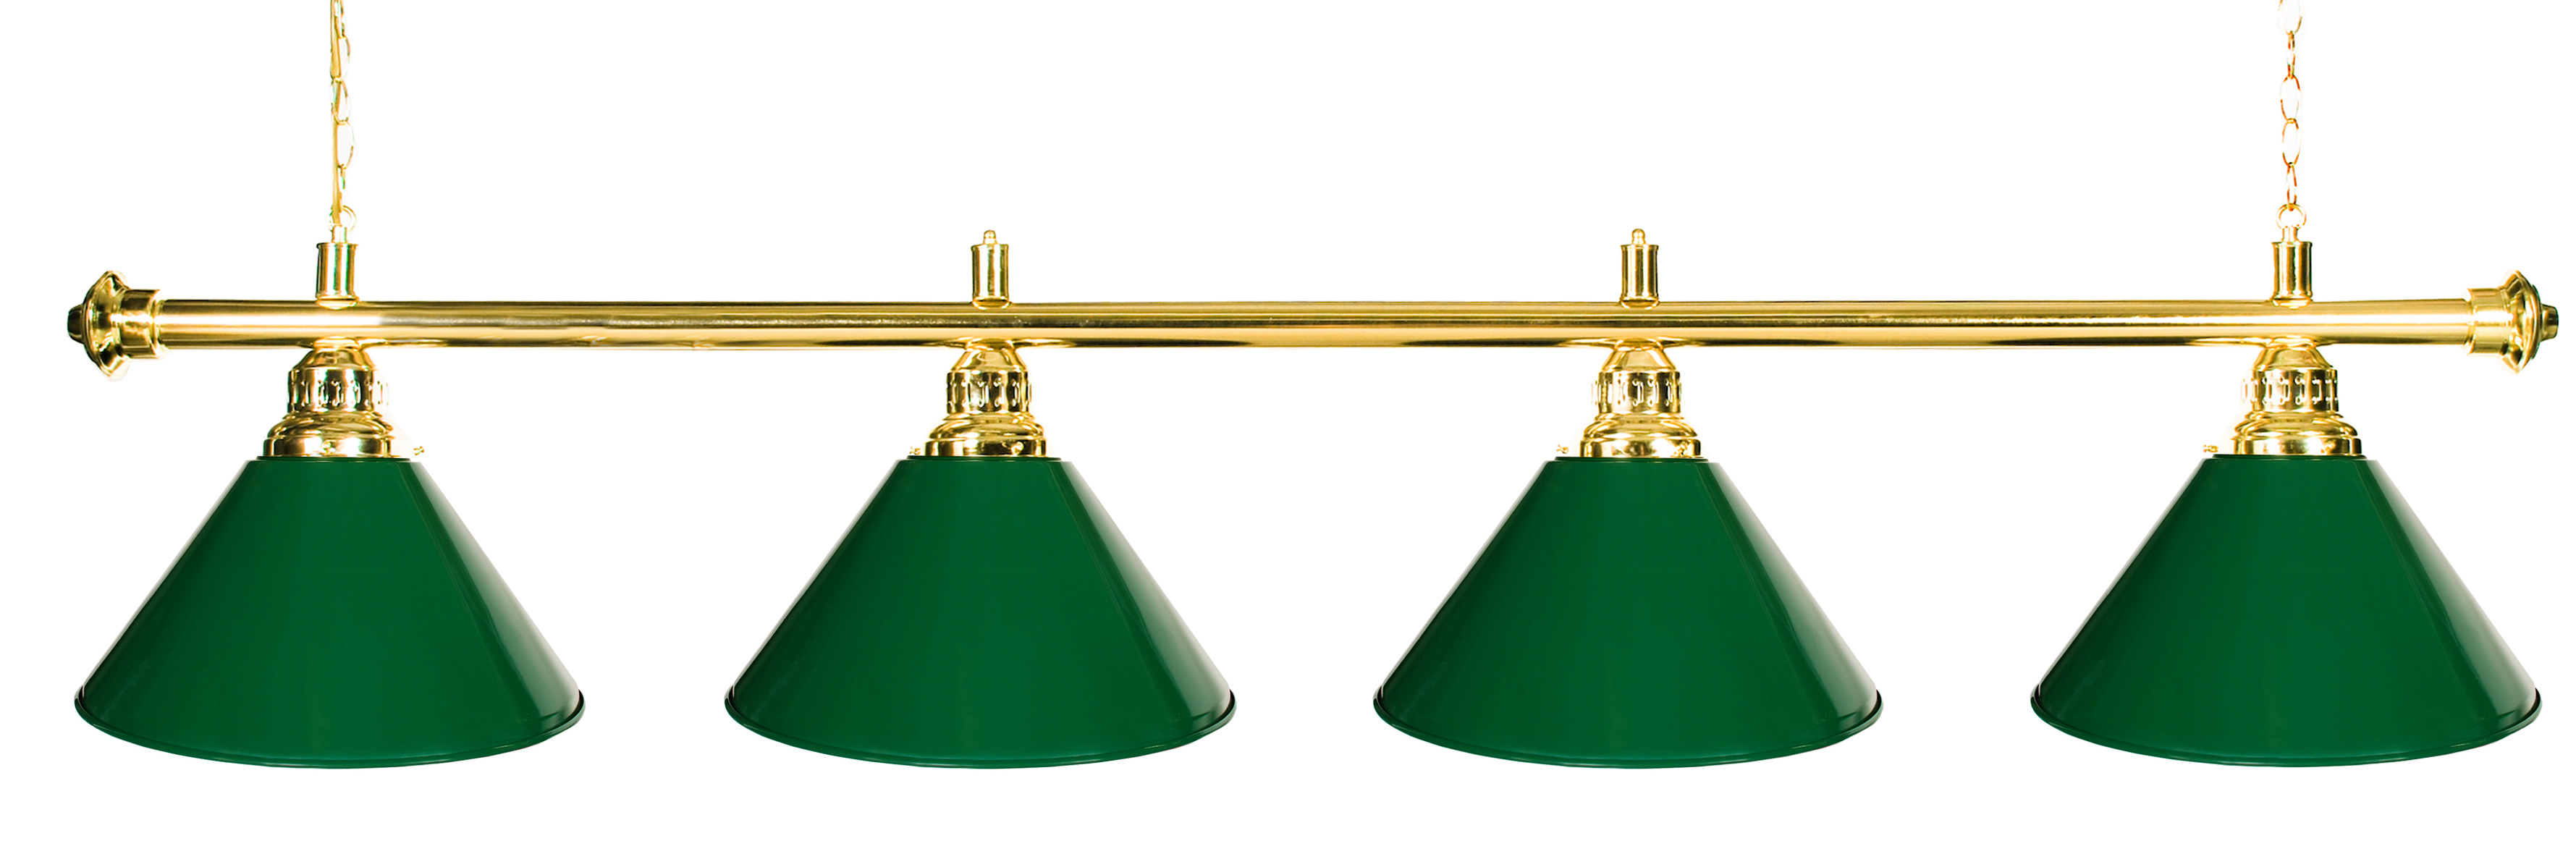 "72"" Pool Table Light Pool Table Light With Metal Green Shades for 9' Table by"